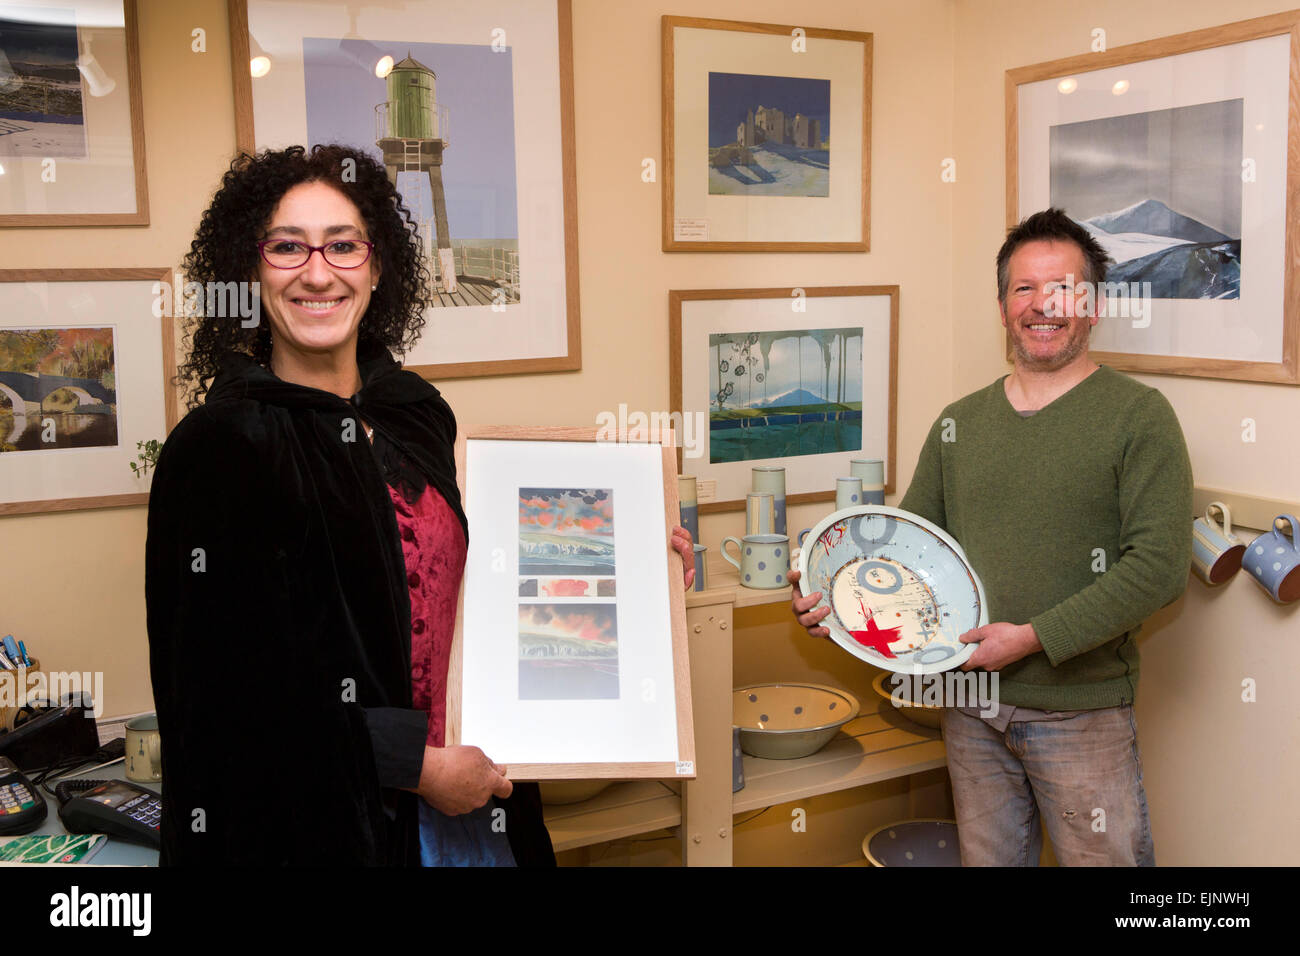 UK, England, Yorkshire, Grassington, Hannah Chesterman, David Ashby of the Courtyard Gallery and Pottery - Stock Image